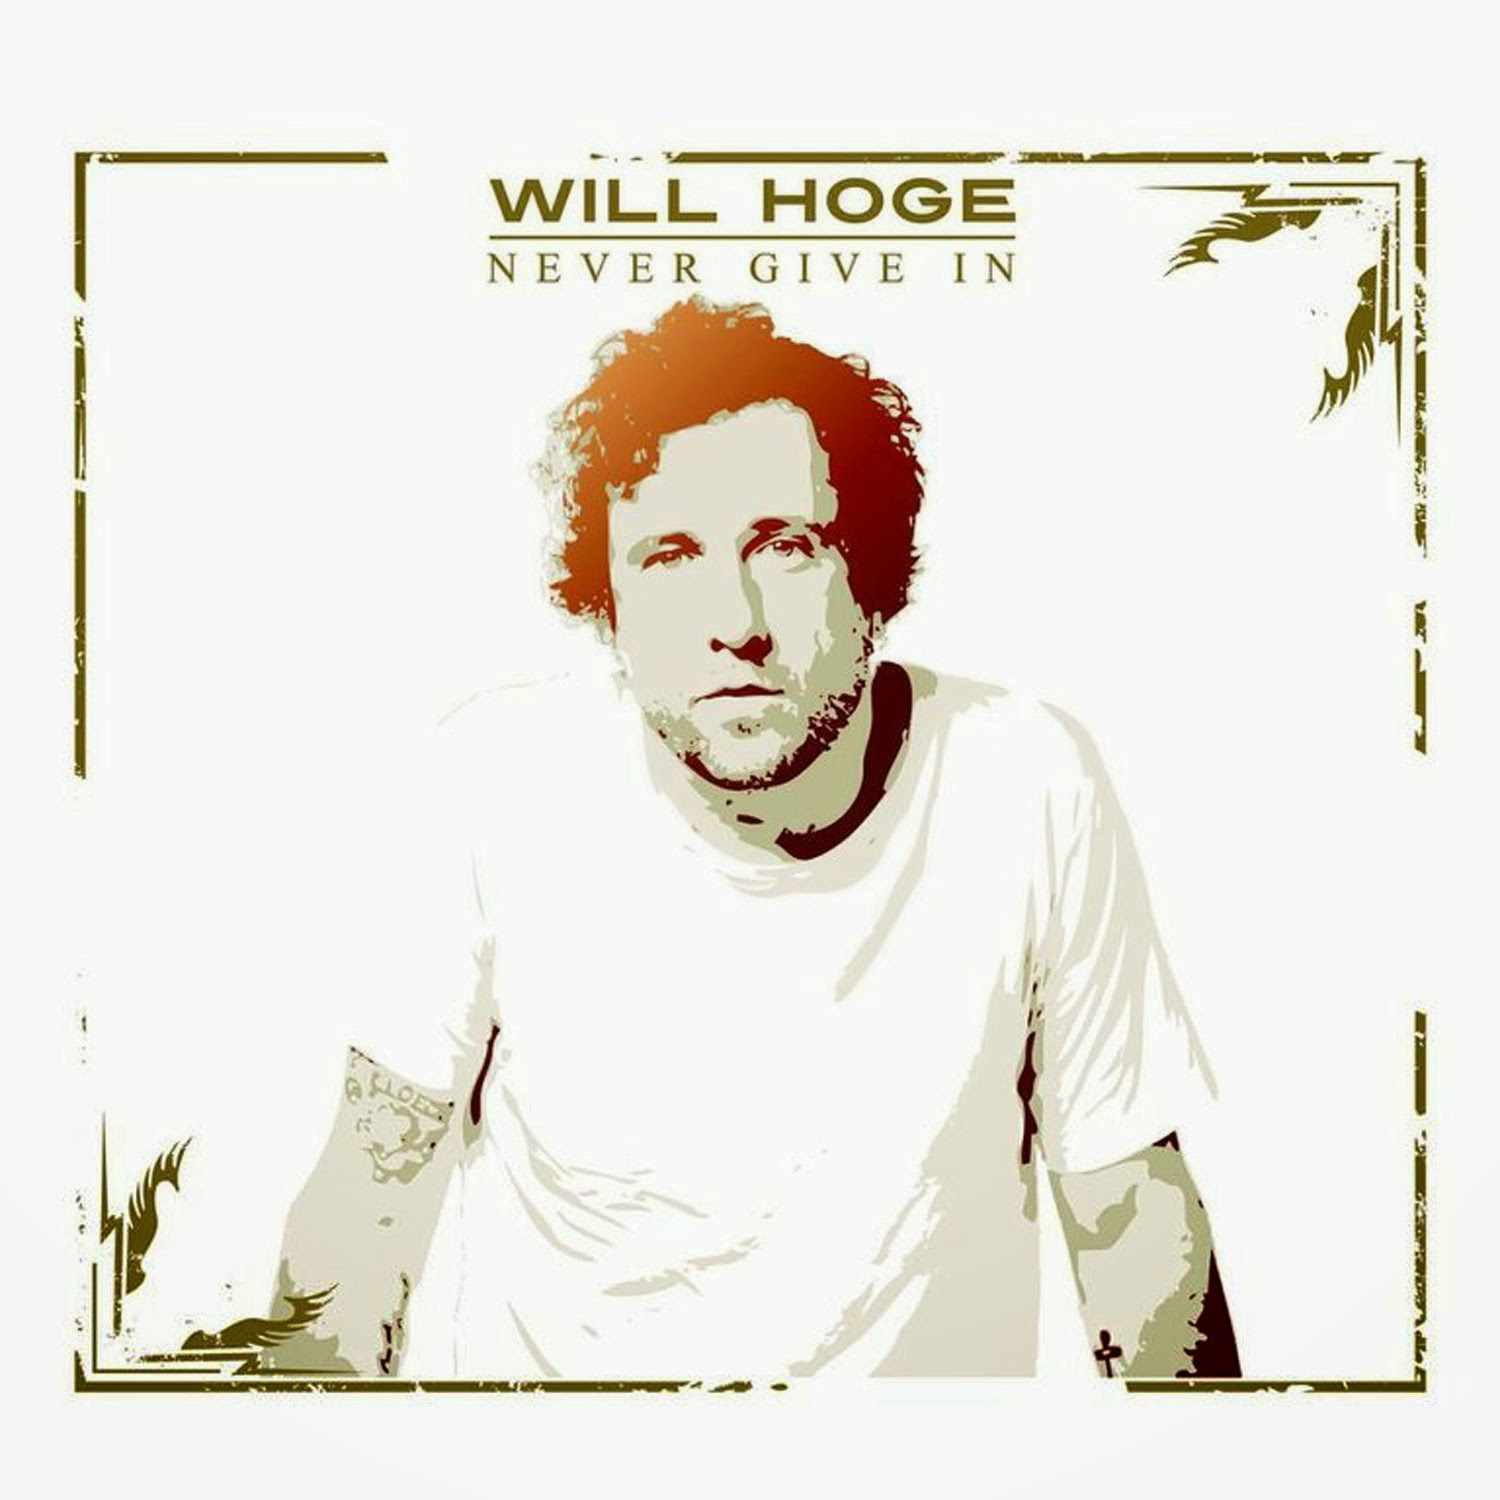 Never Give In by Will Hoge: An Album Review